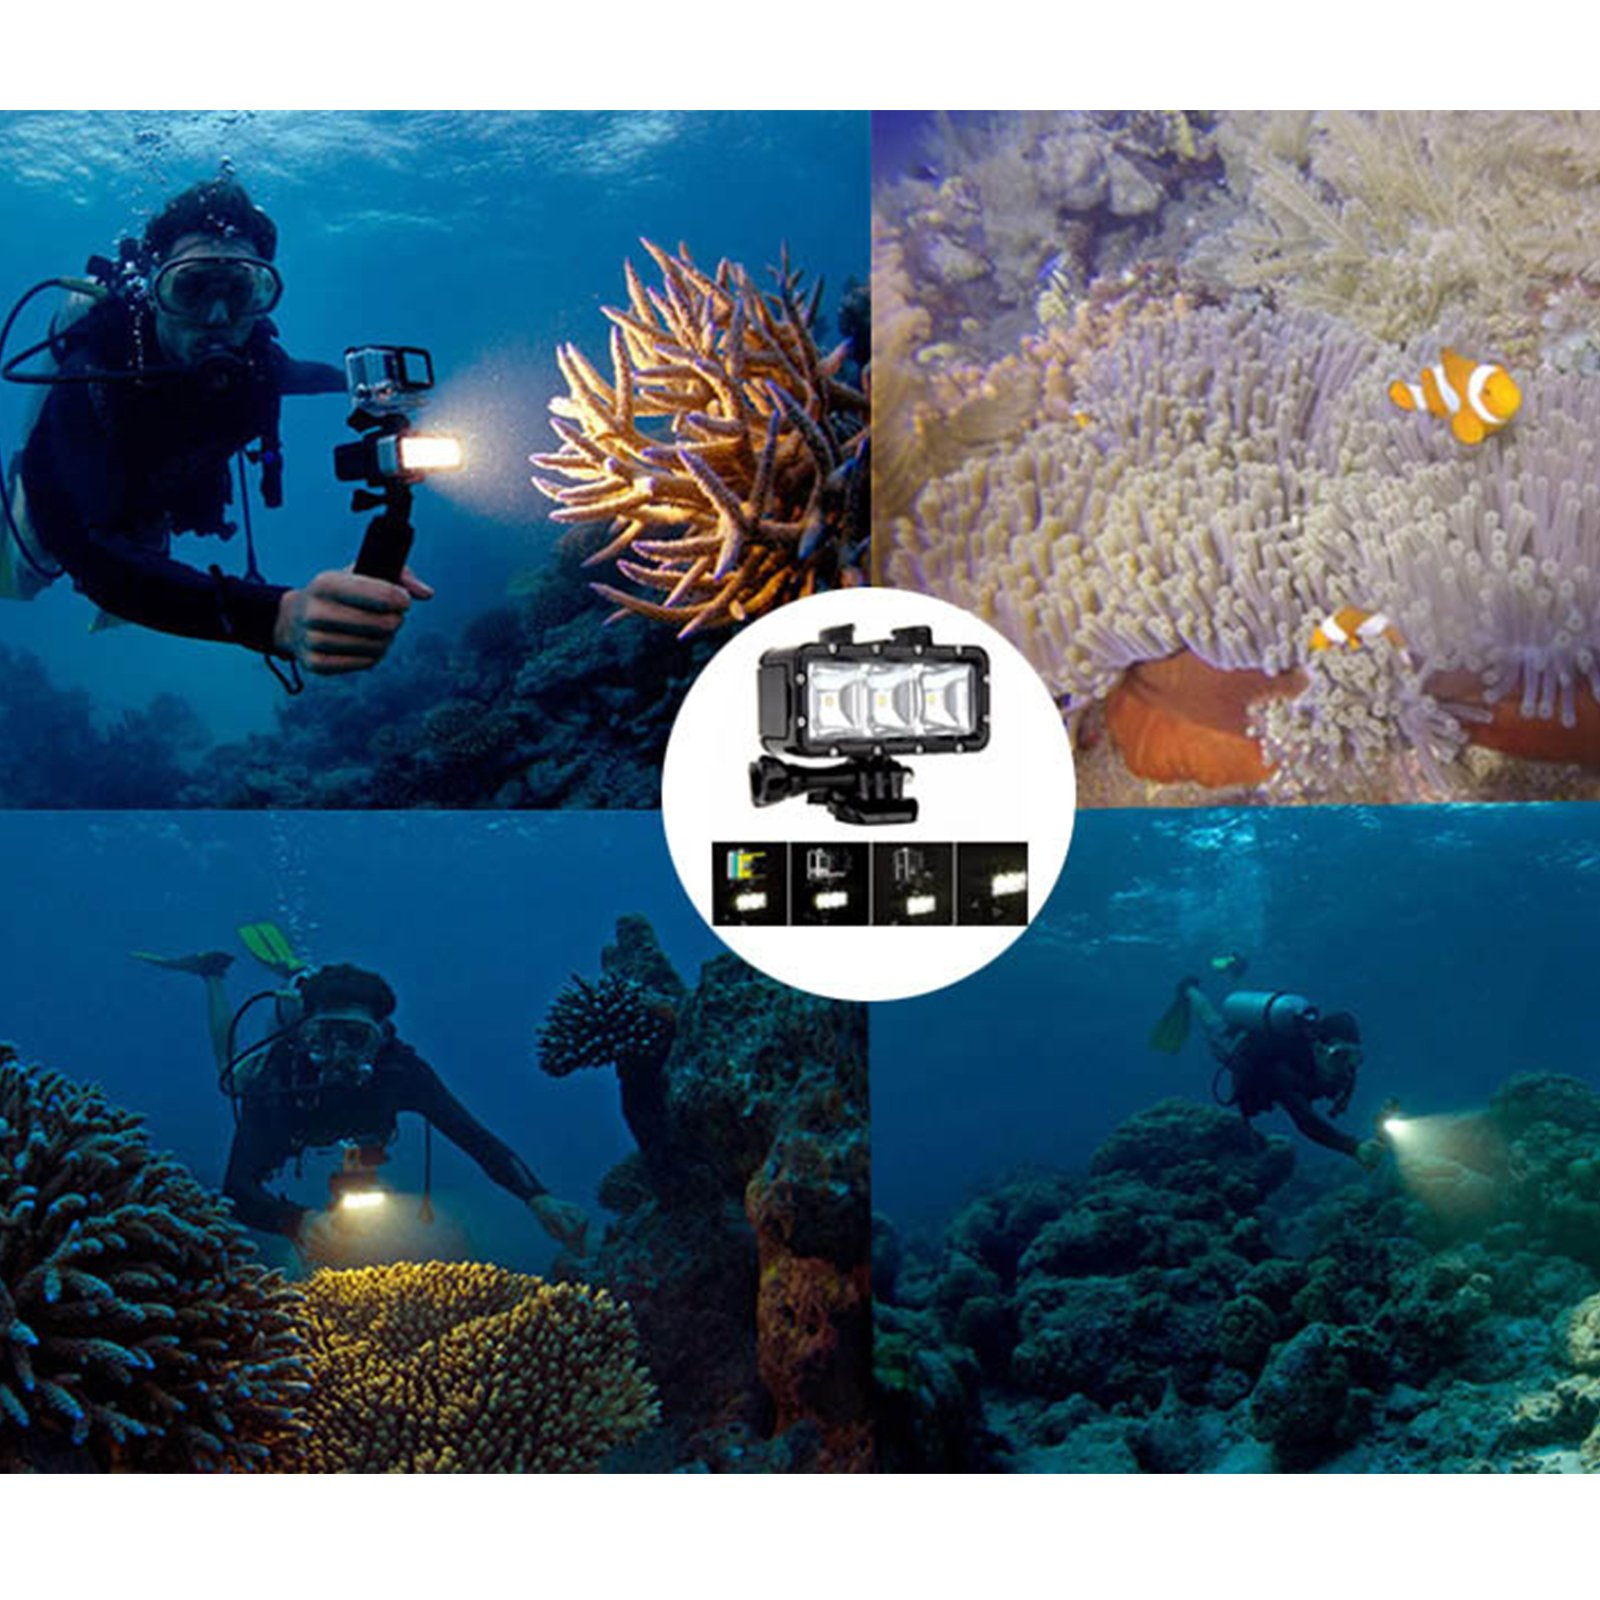 SHOOT Waterproof 30m Diving Light High Power Dimmable LED Underwater Fill Light for GoPro Hero 6/5/5S/4/4S/3+,Campark AKASO DBPOWER Crosstour SHOOT Camera with 1200mAh Built-in Rechargeable Battery by SHOOT (Image #6)